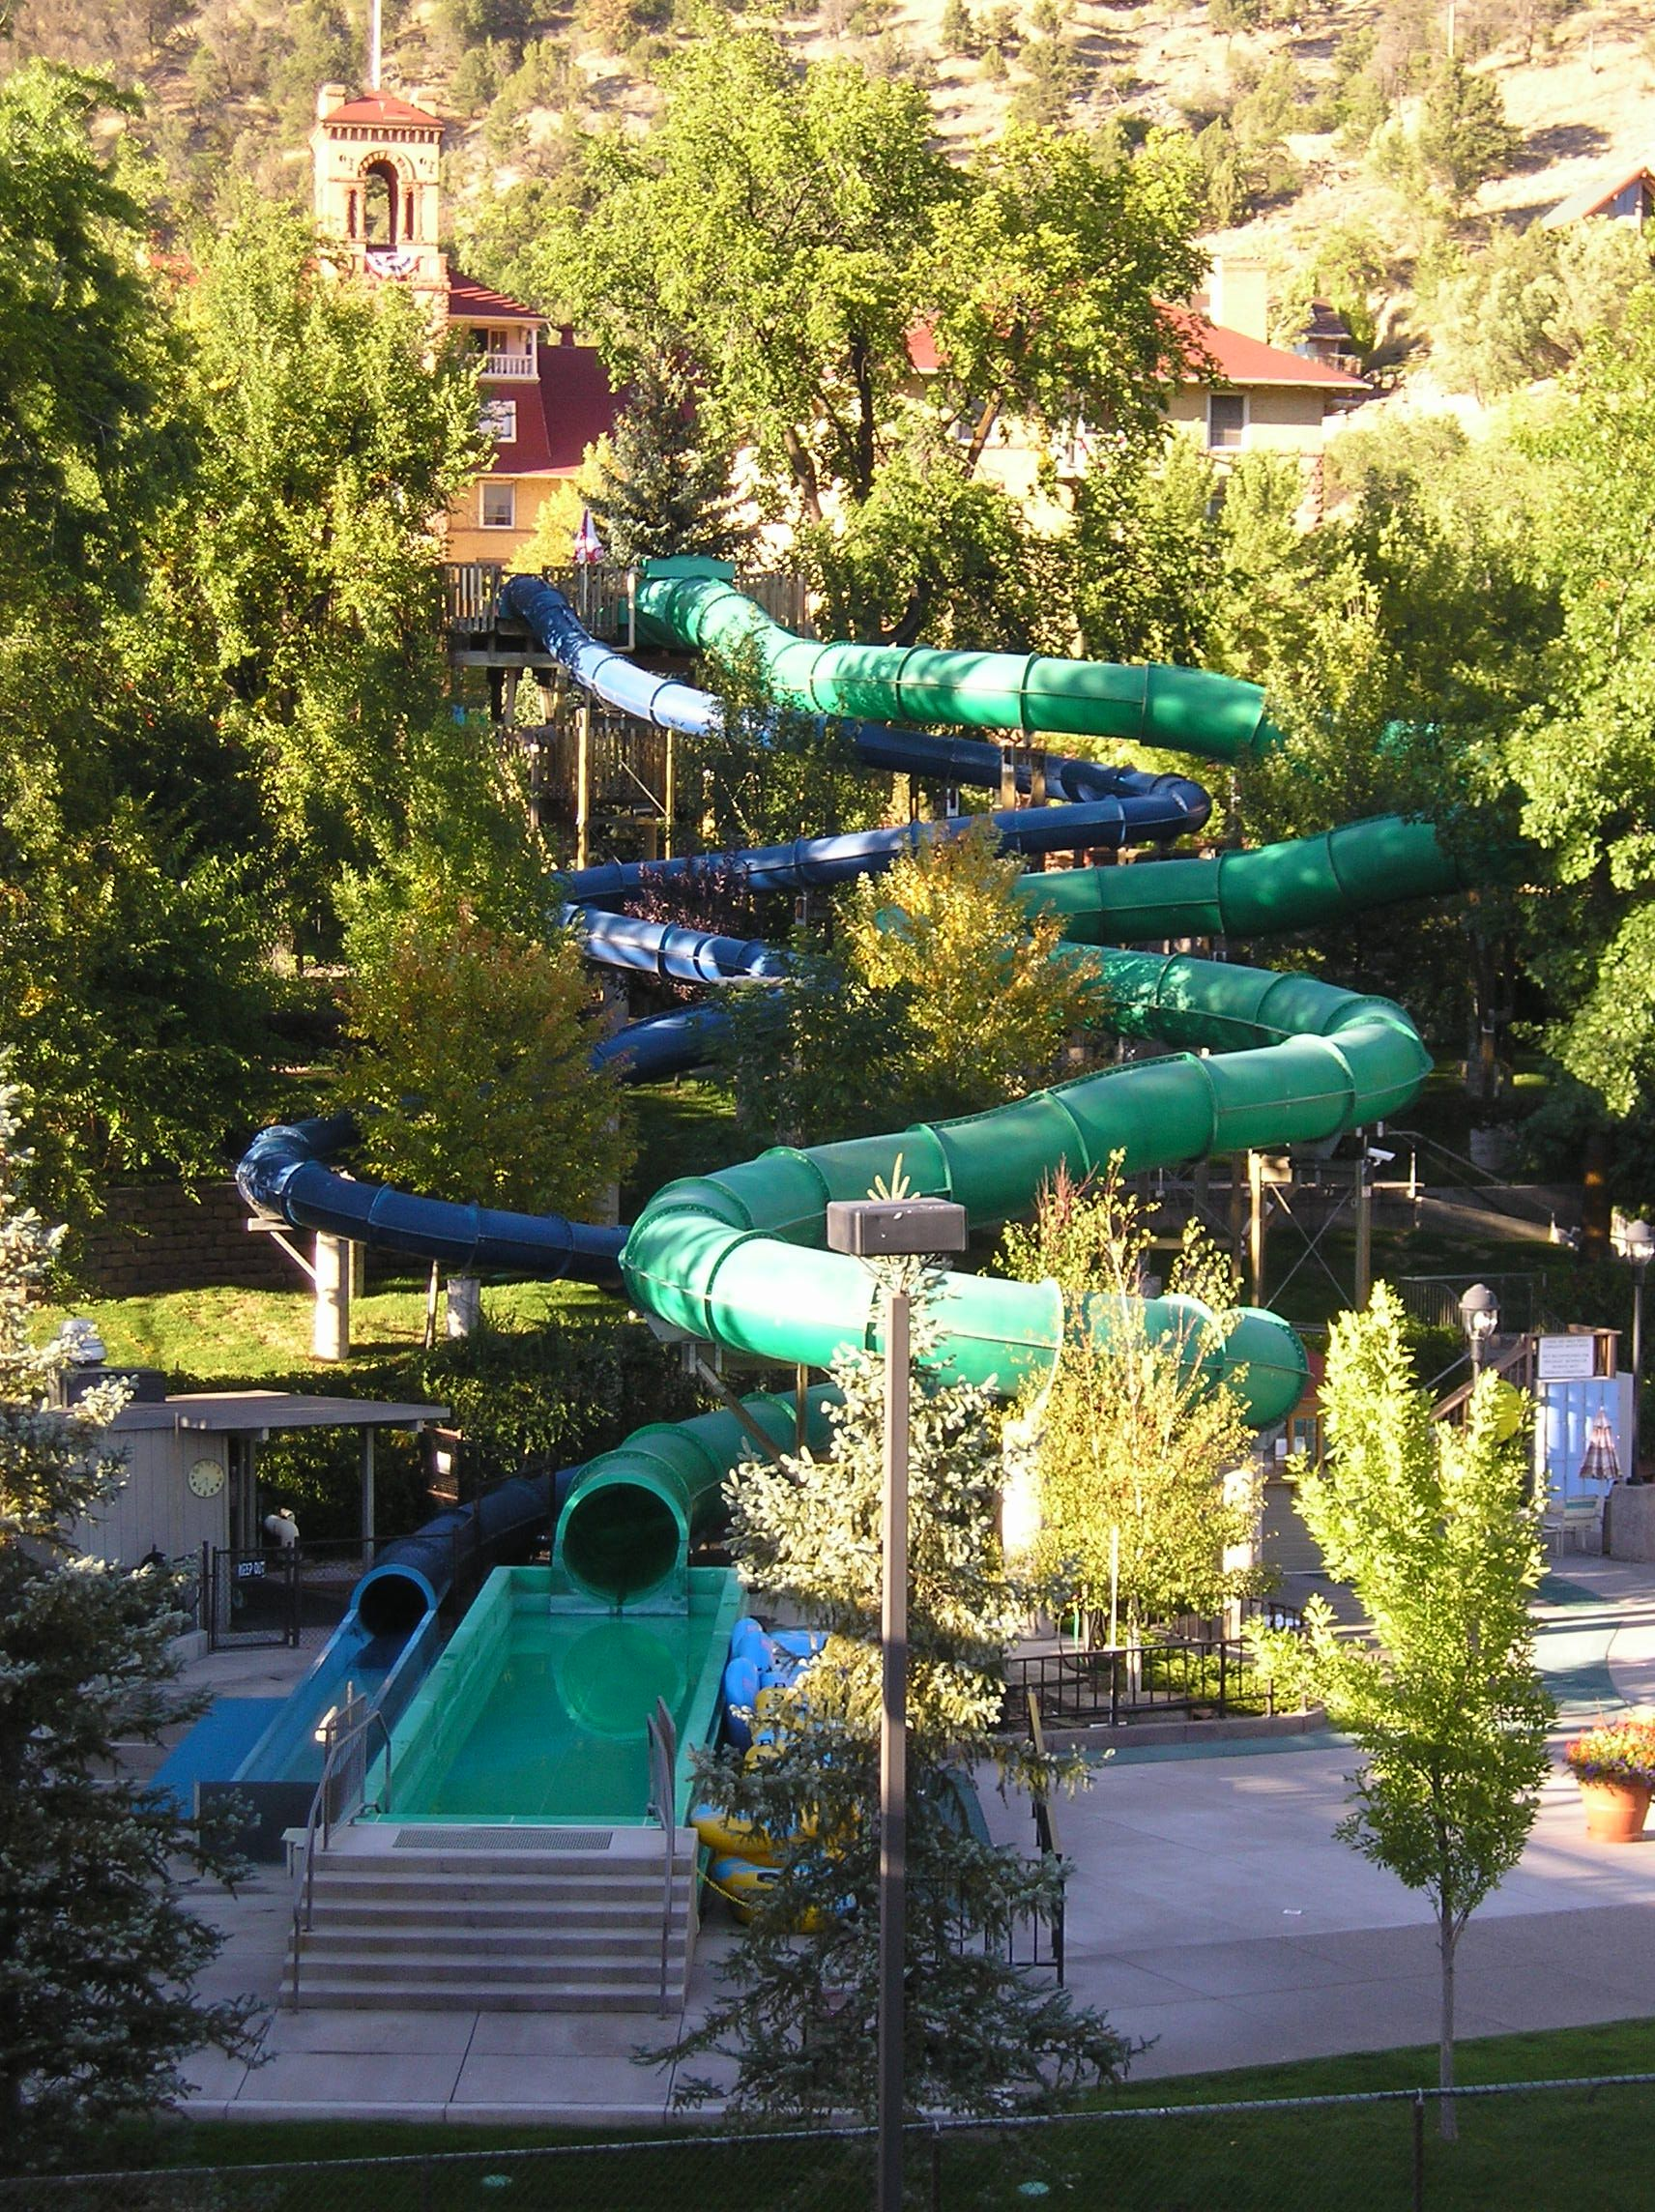 One Of The Water Slides At The Glenwood Hot Springs Pool